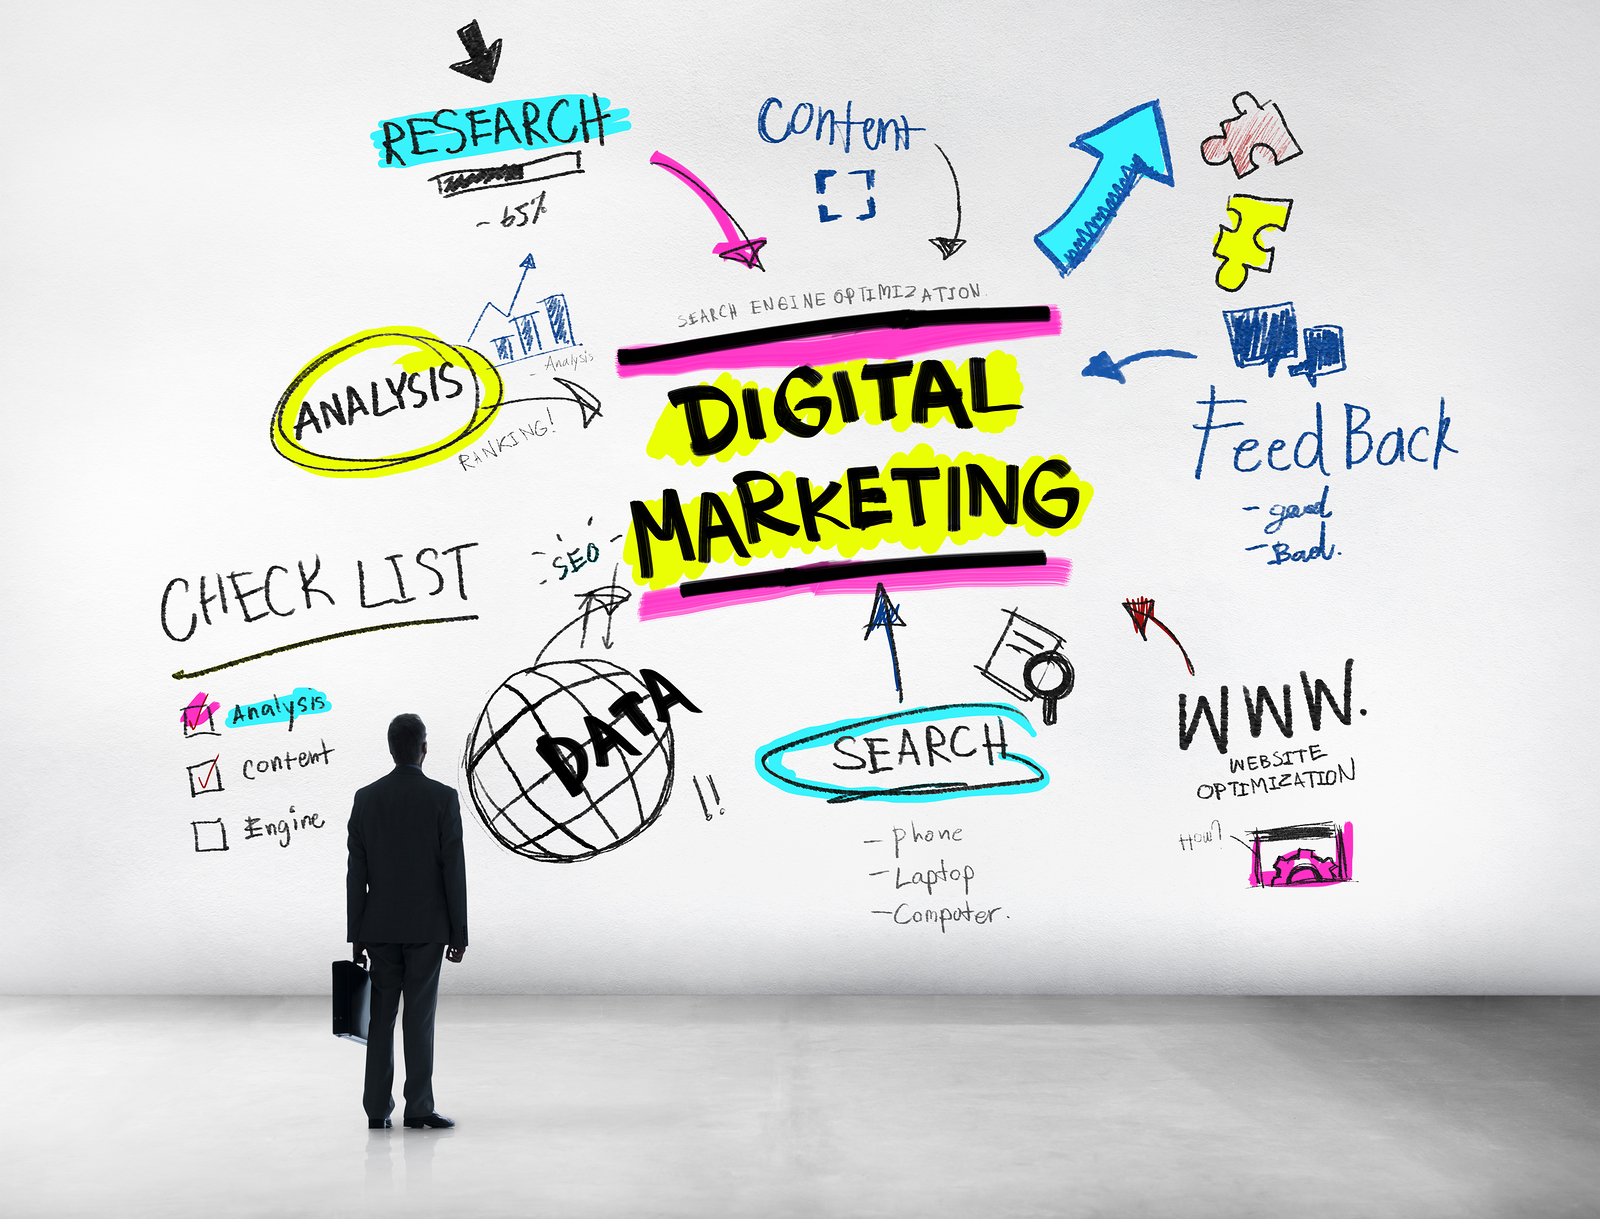 industrial training in digital marketing industrial training in chandigarh Industrial Training in Chandigarh industrial training in digital marketing